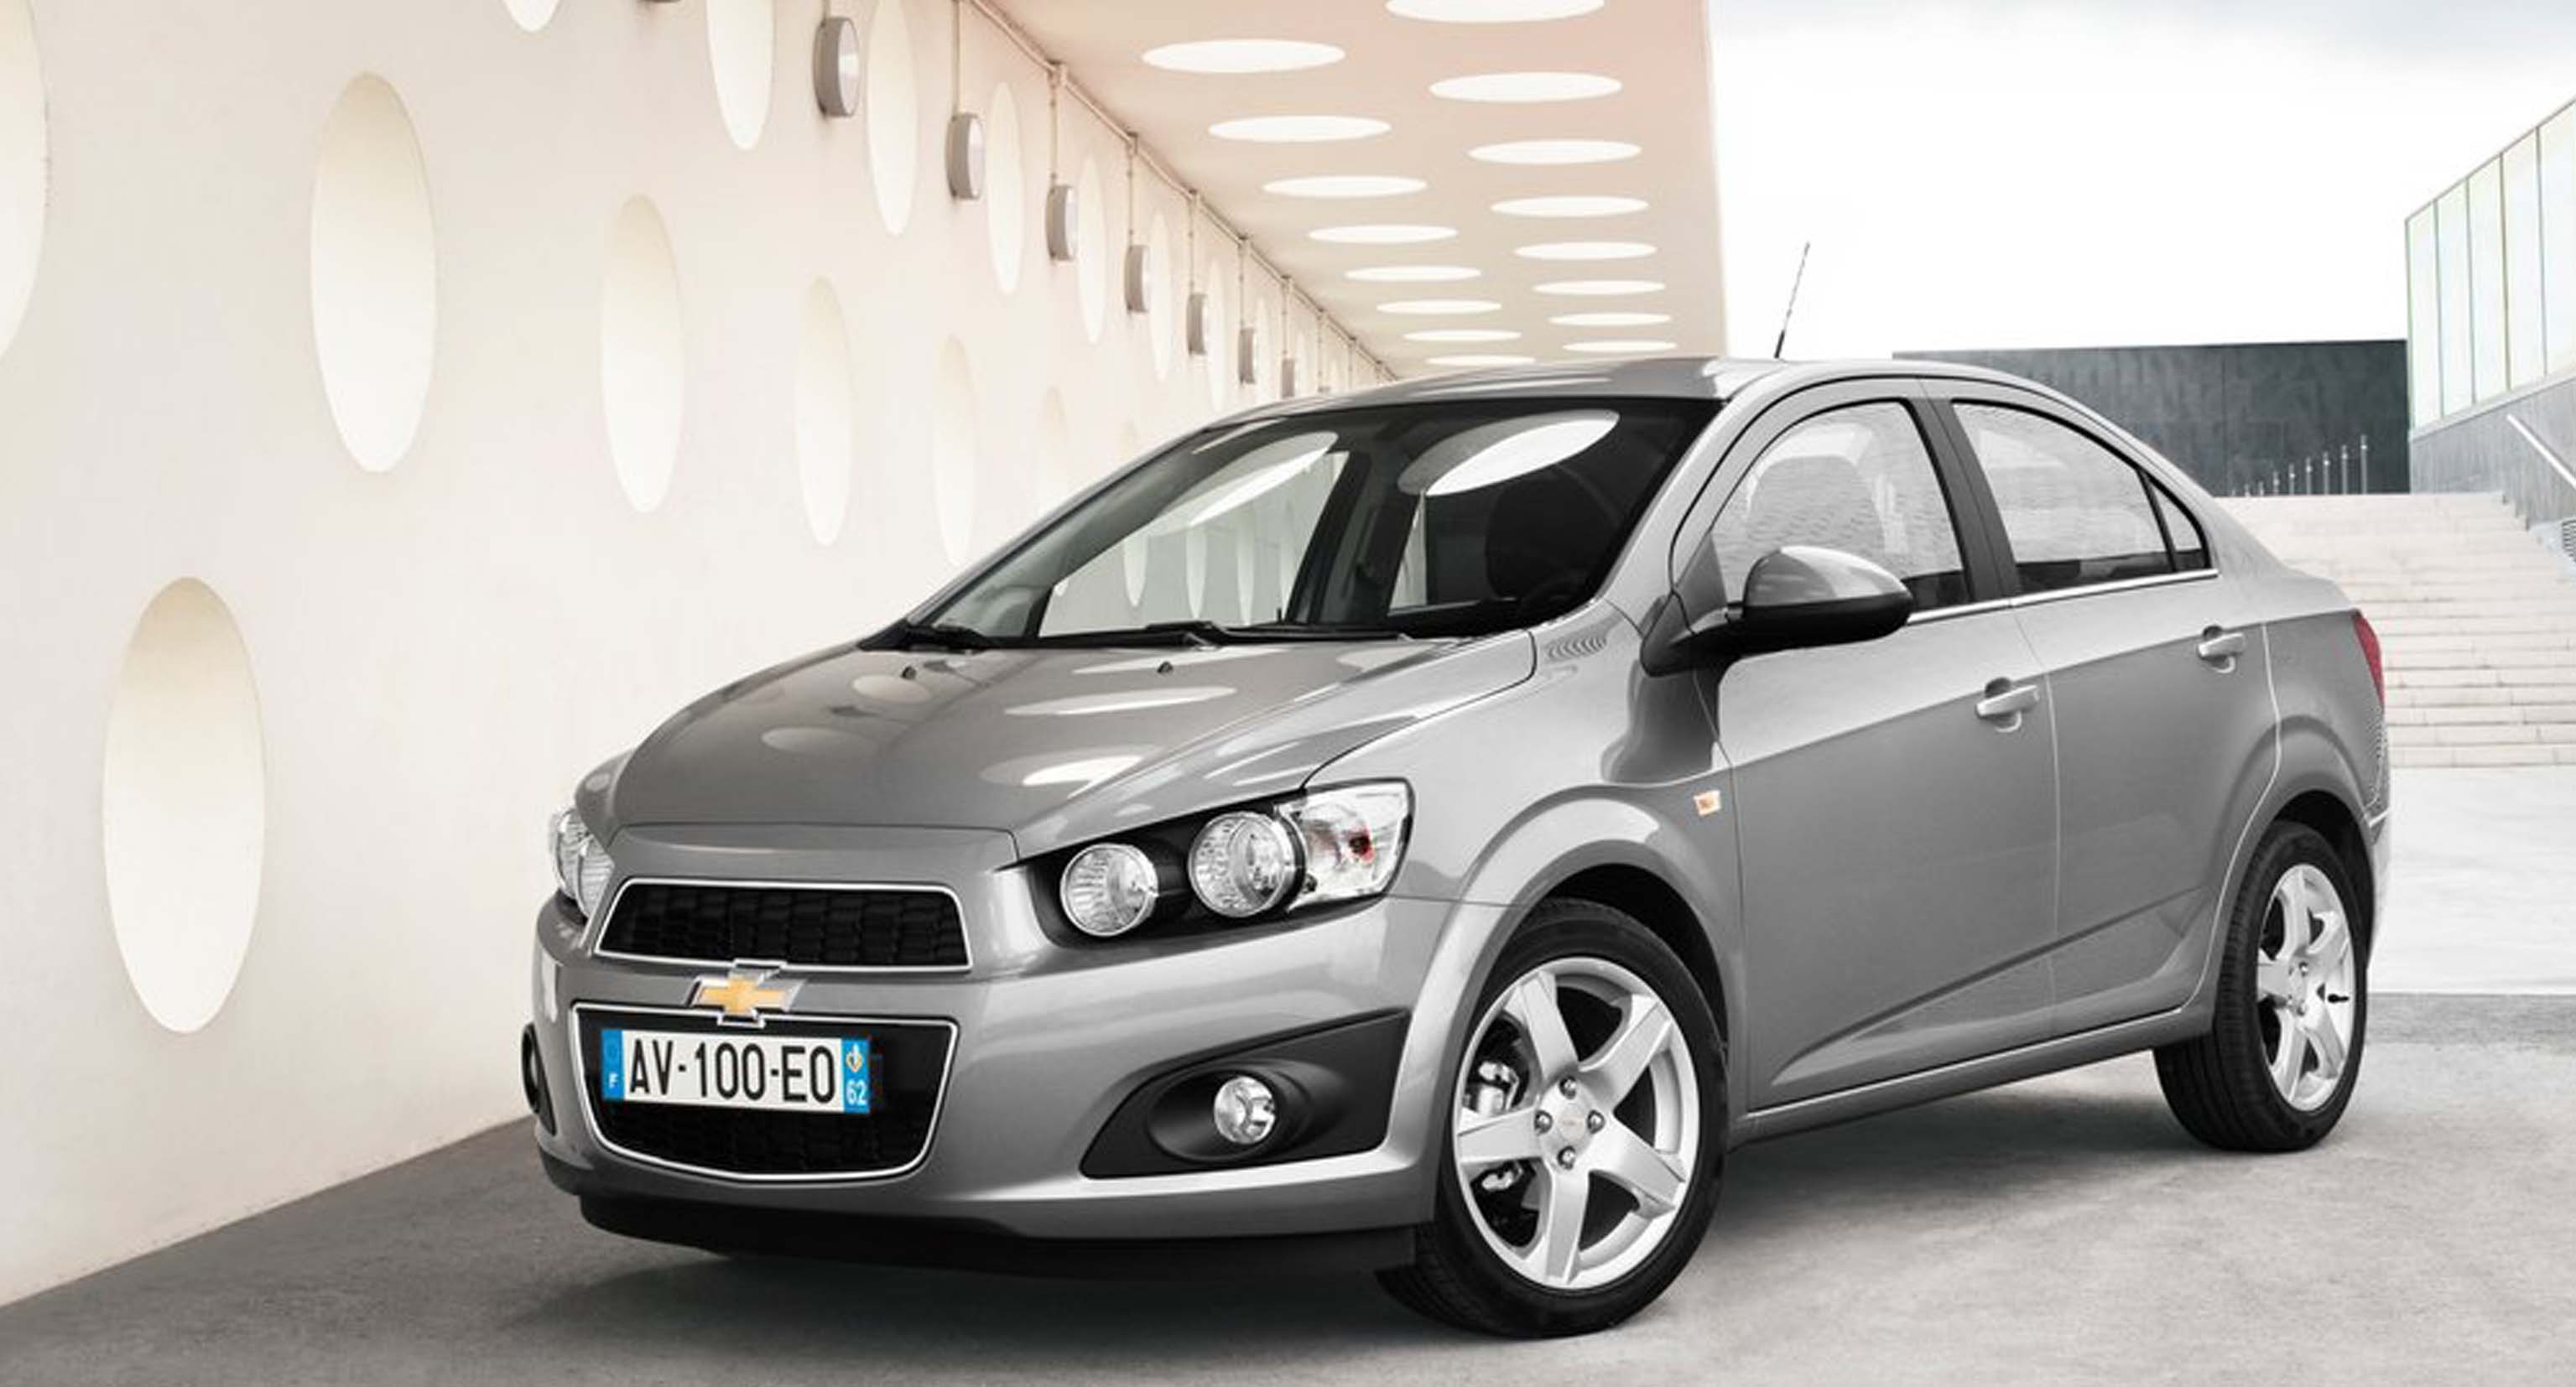 chevrolet aveo sedan 2014 wallpaper #7